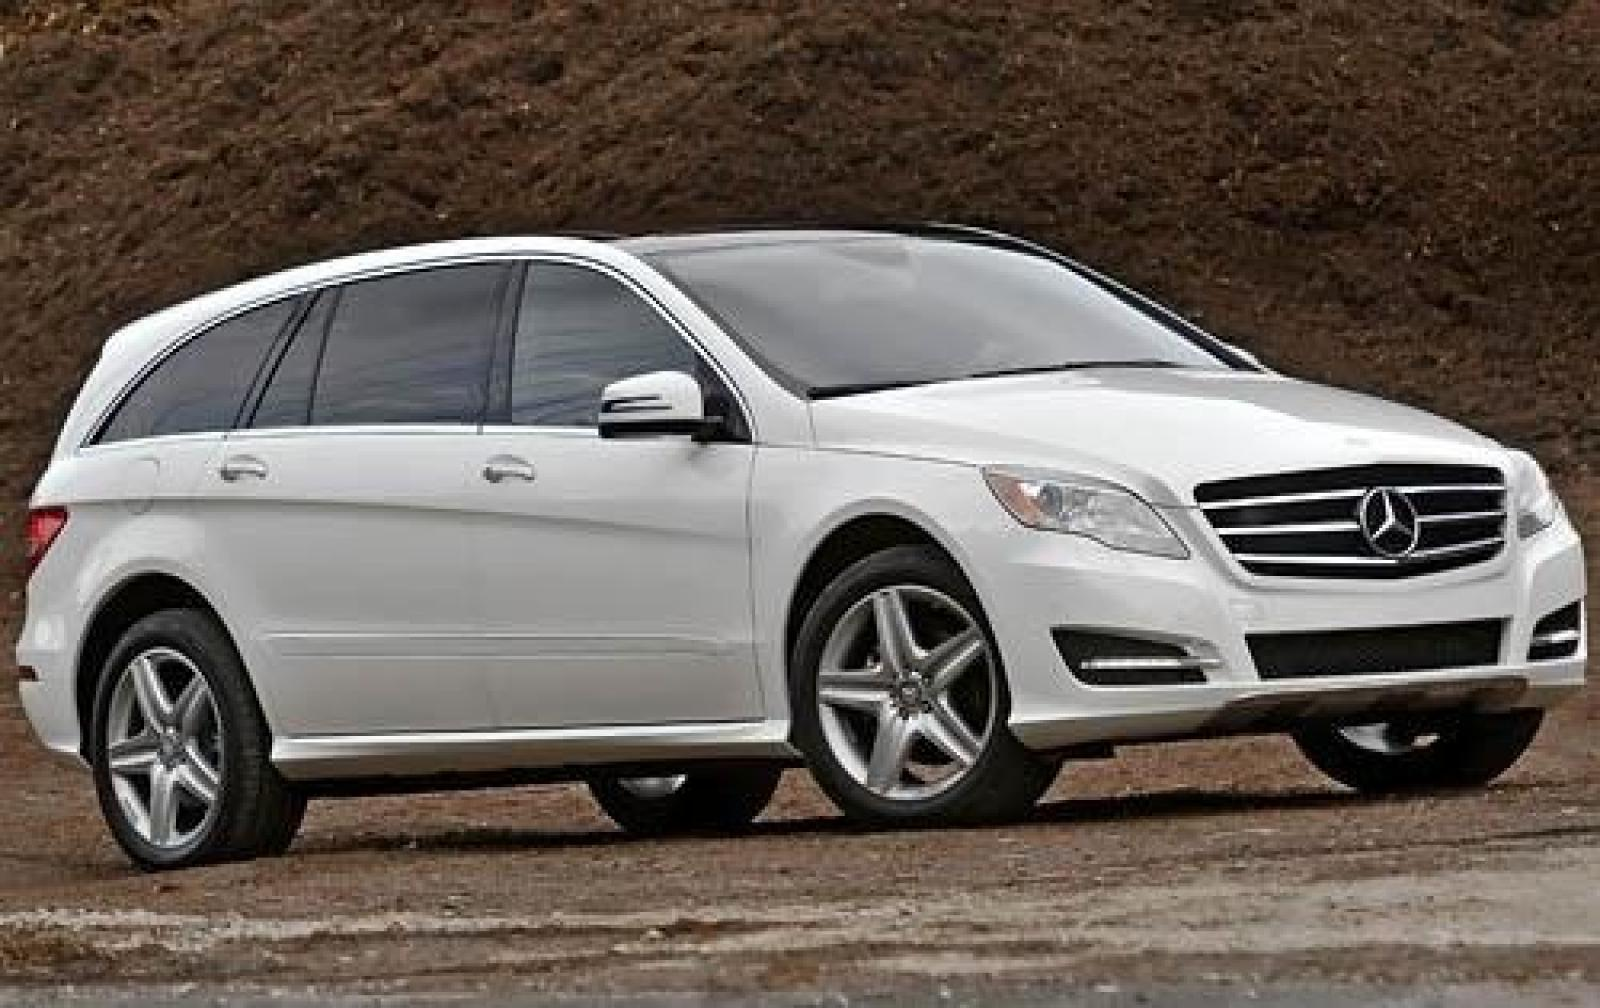 2012 mercedes benz r class information and photos zombiedrive. Black Bedroom Furniture Sets. Home Design Ideas